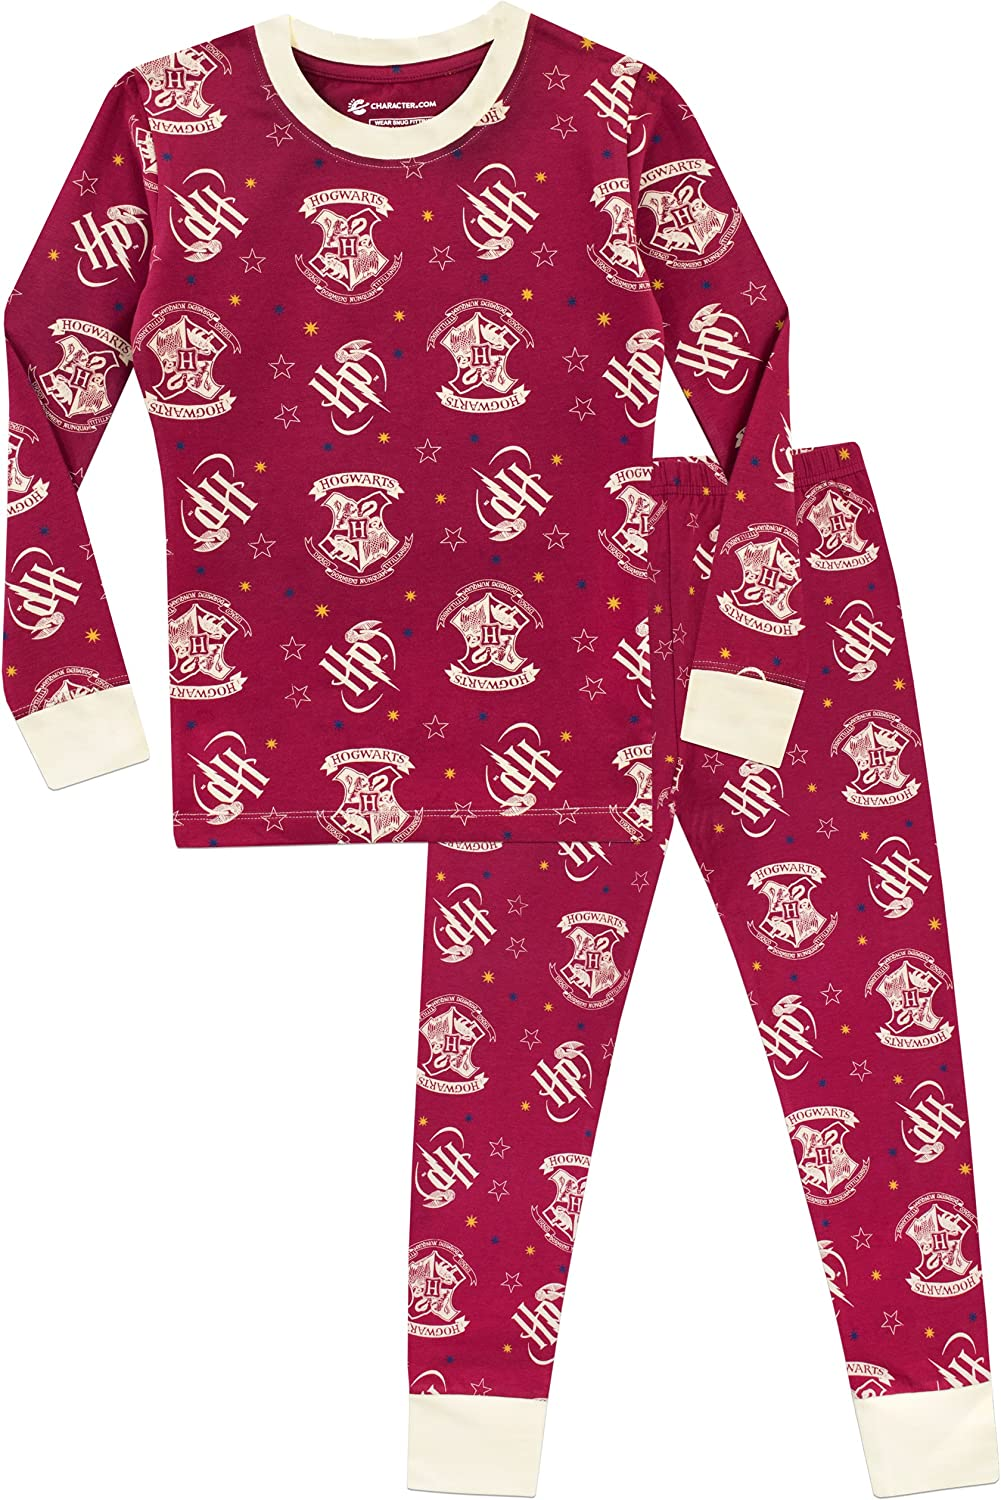 Harry Potter Girls Hogwarts Pyjamas Snuggle Fit